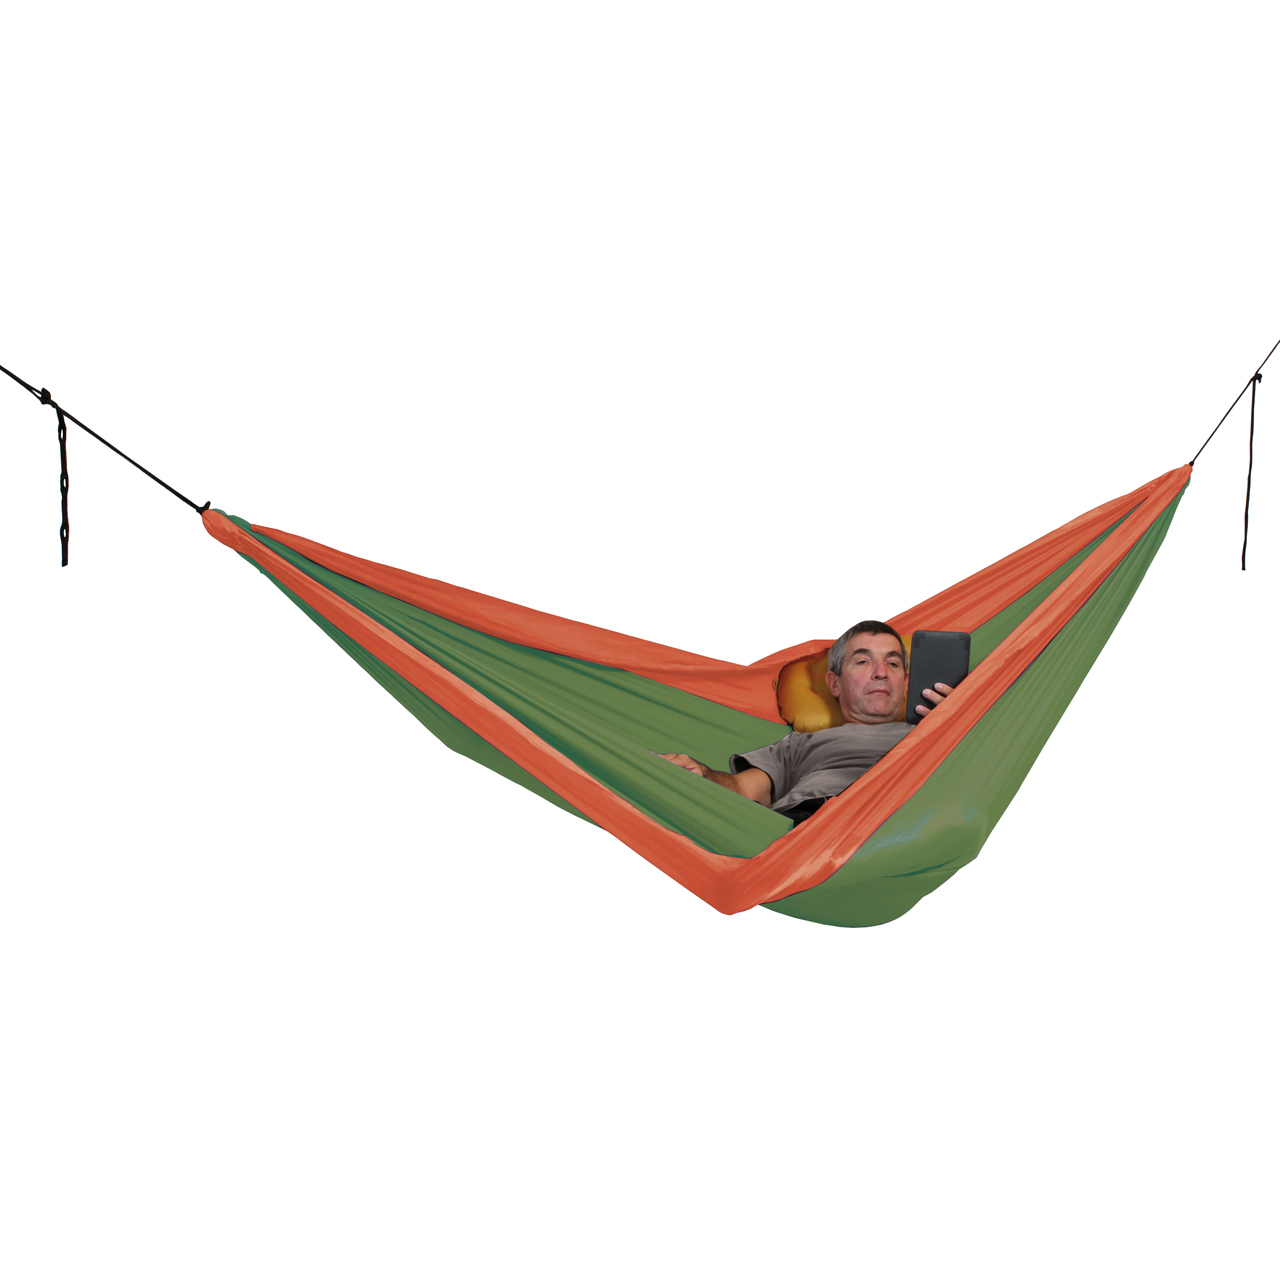 Hängematte Exped Exped Travel Hammock Duo